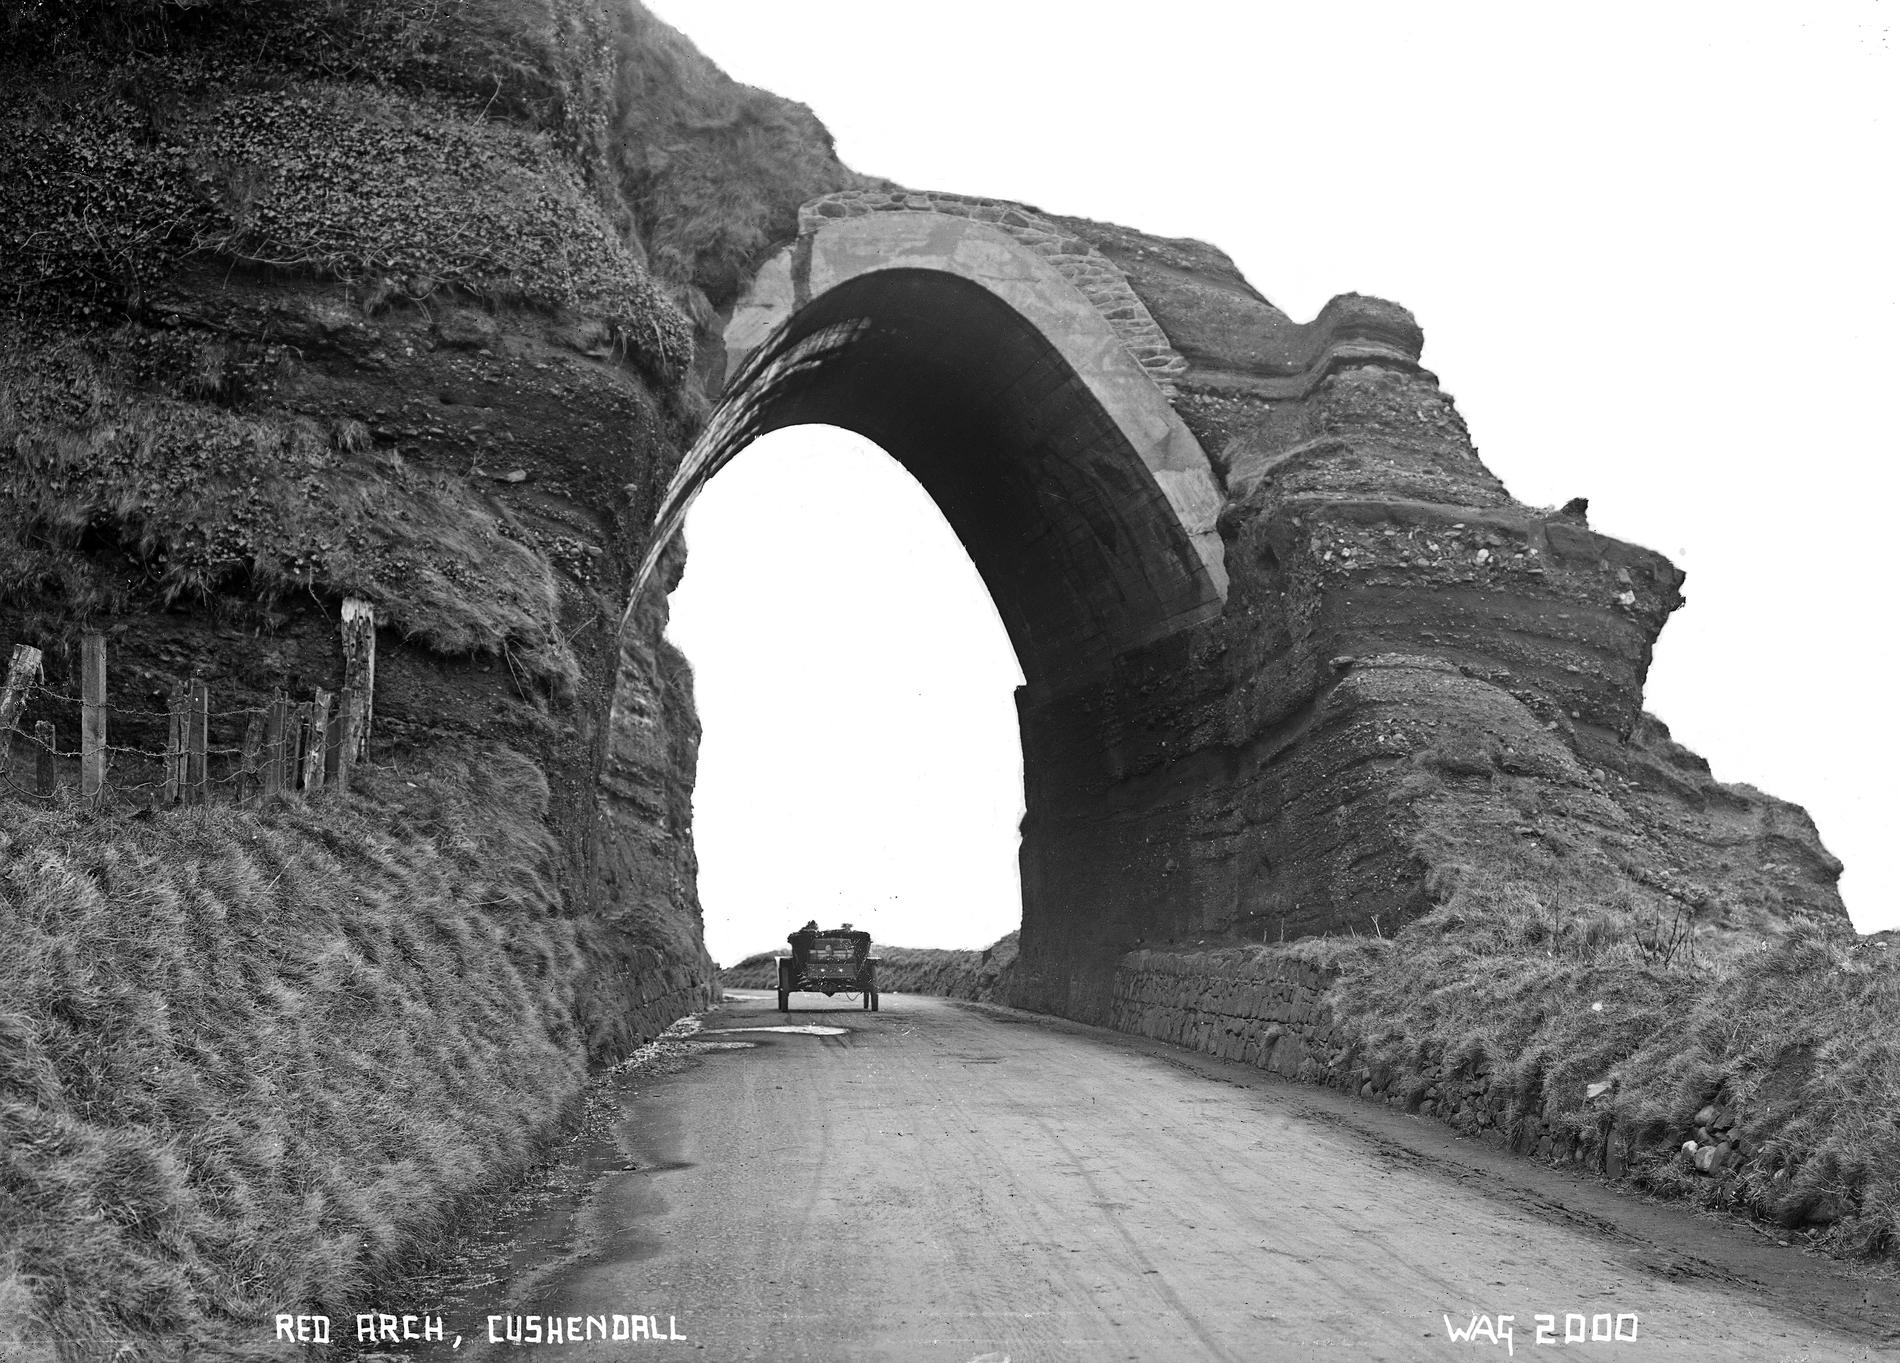 RED ARCH, CUSHENDALL (Photograph; glass plate negative)